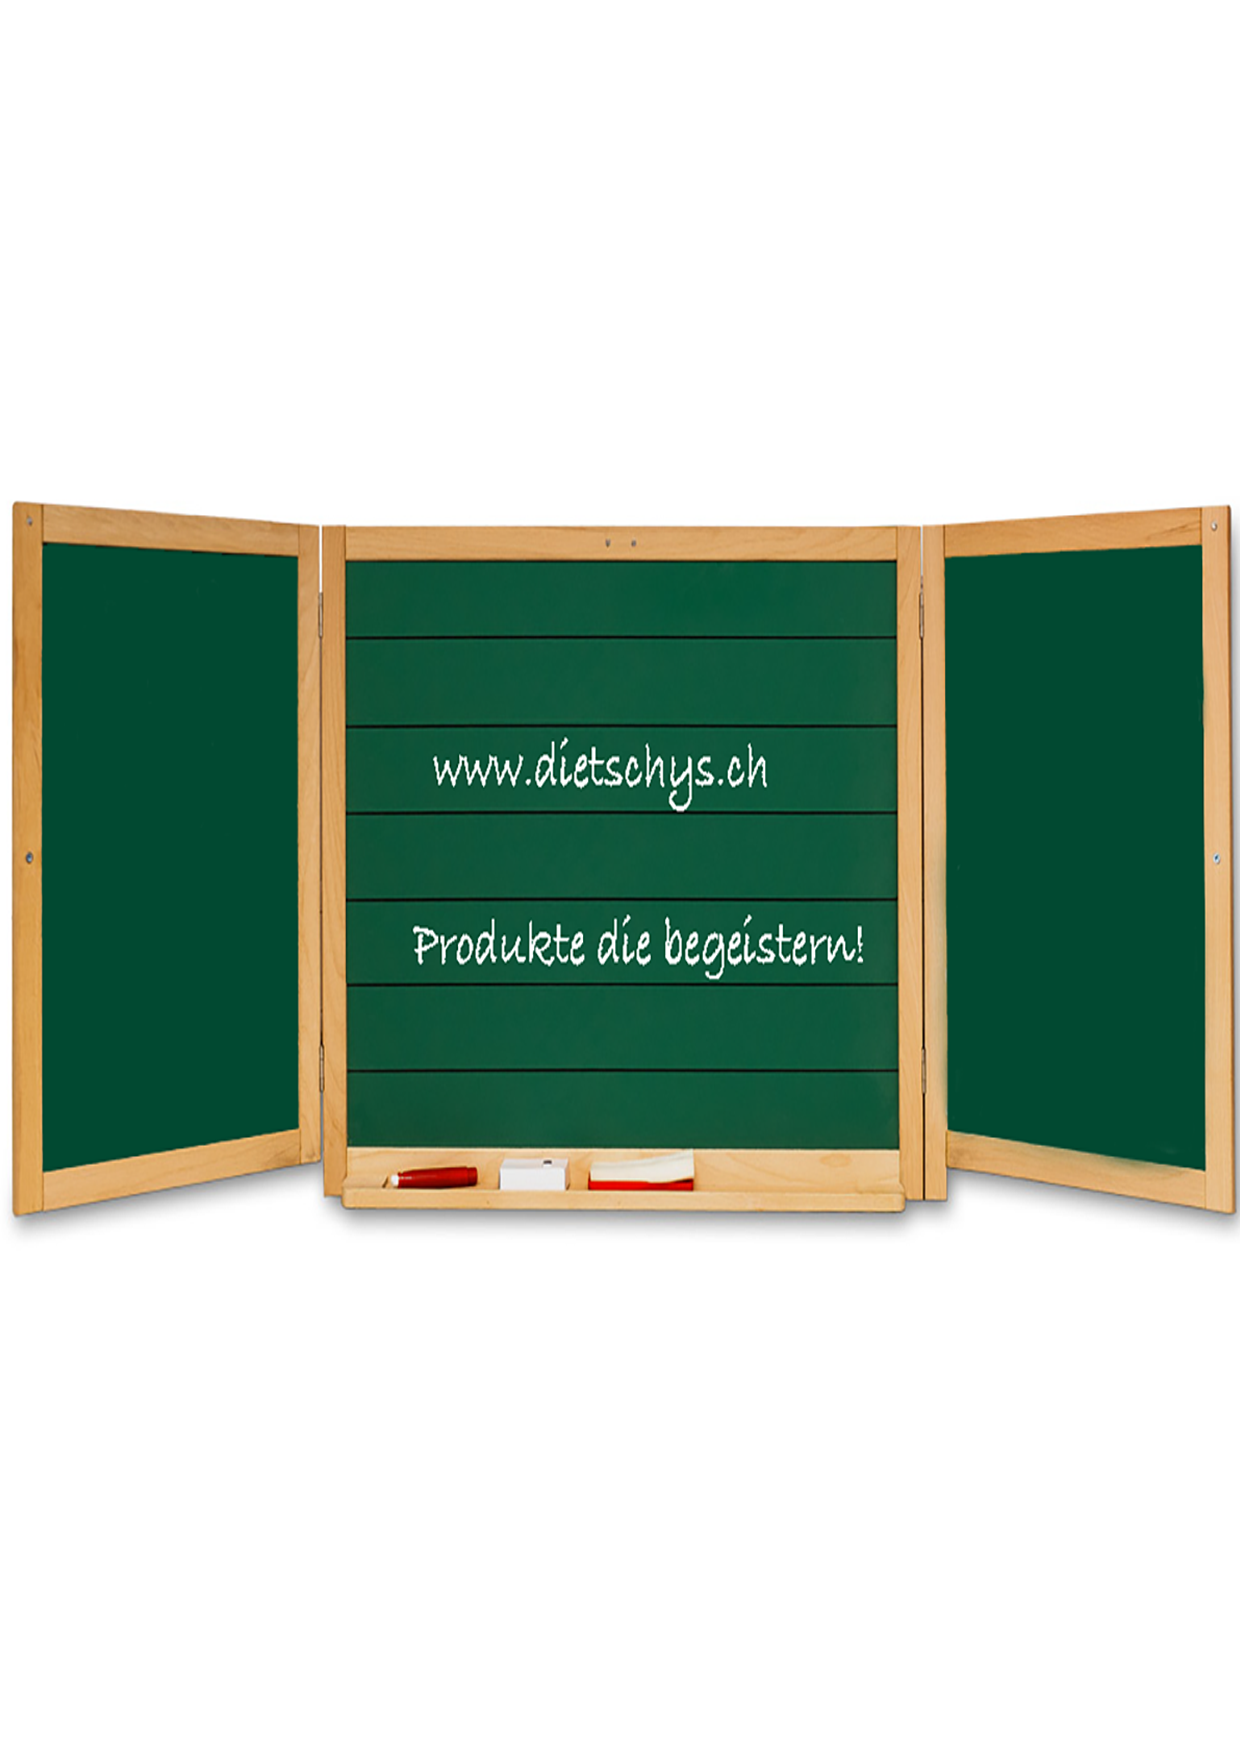 dietschys wandtafel in m hlethurnen kaufen bei. Black Bedroom Furniture Sets. Home Design Ideas